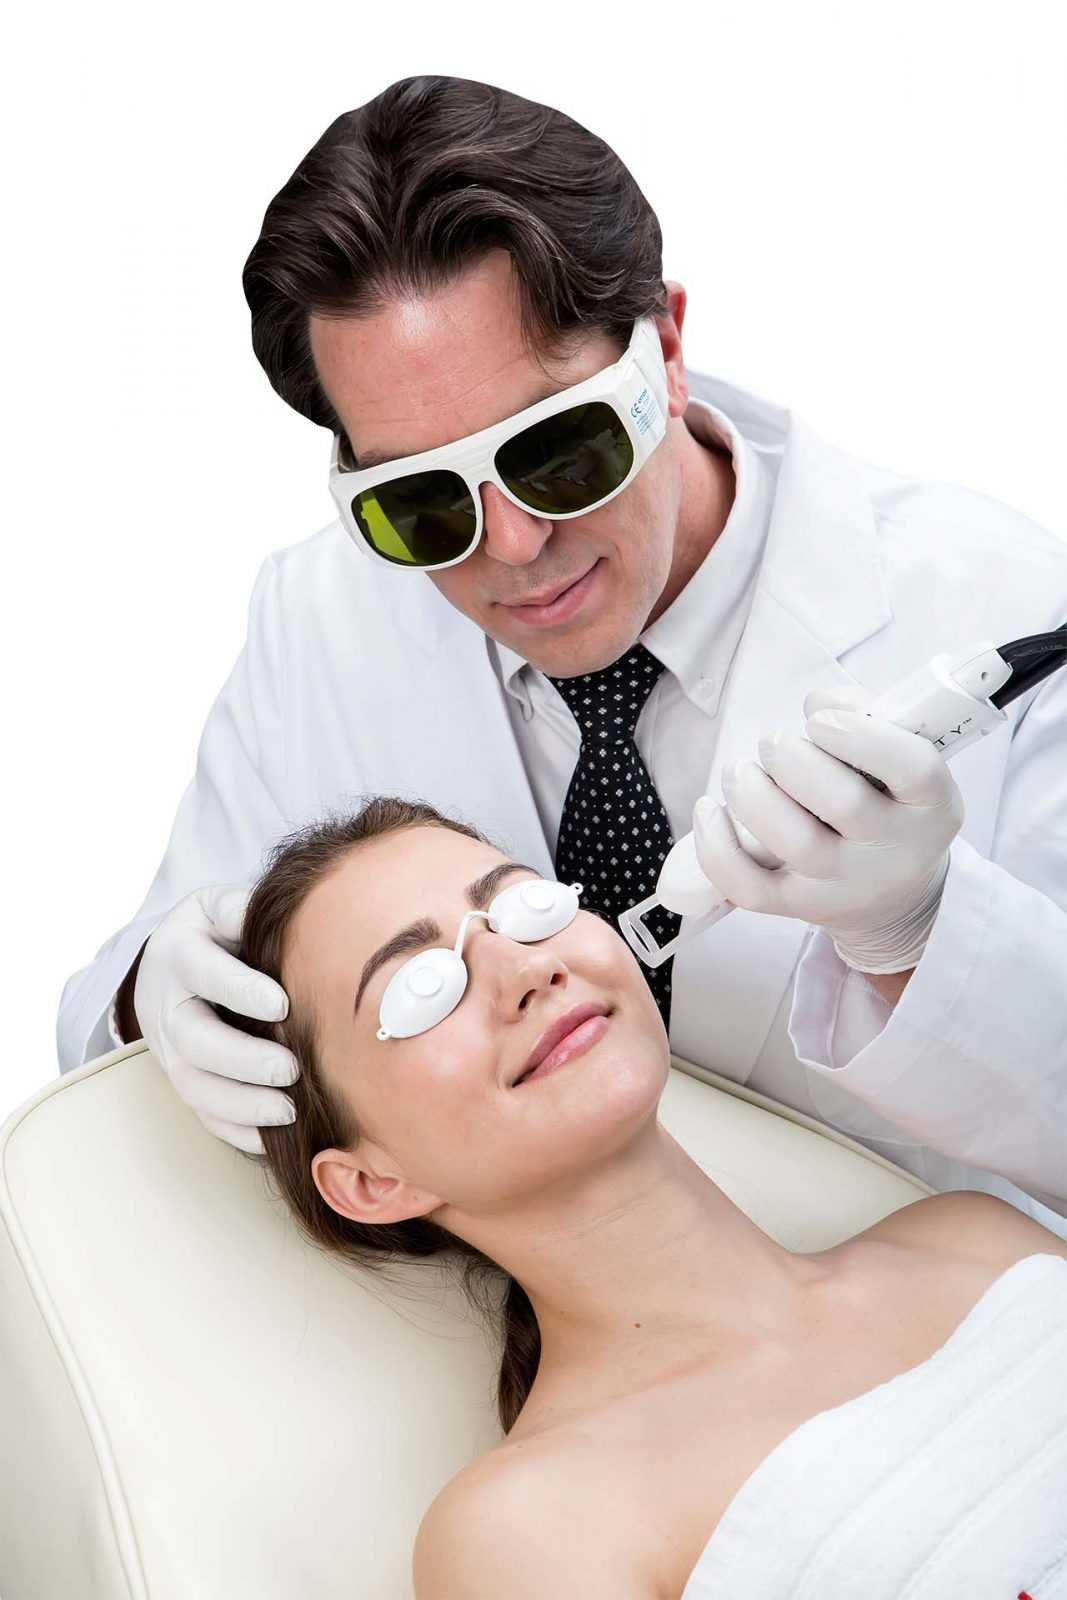 Laser Treatment for Facial and Skin Rejuvenation in Everett